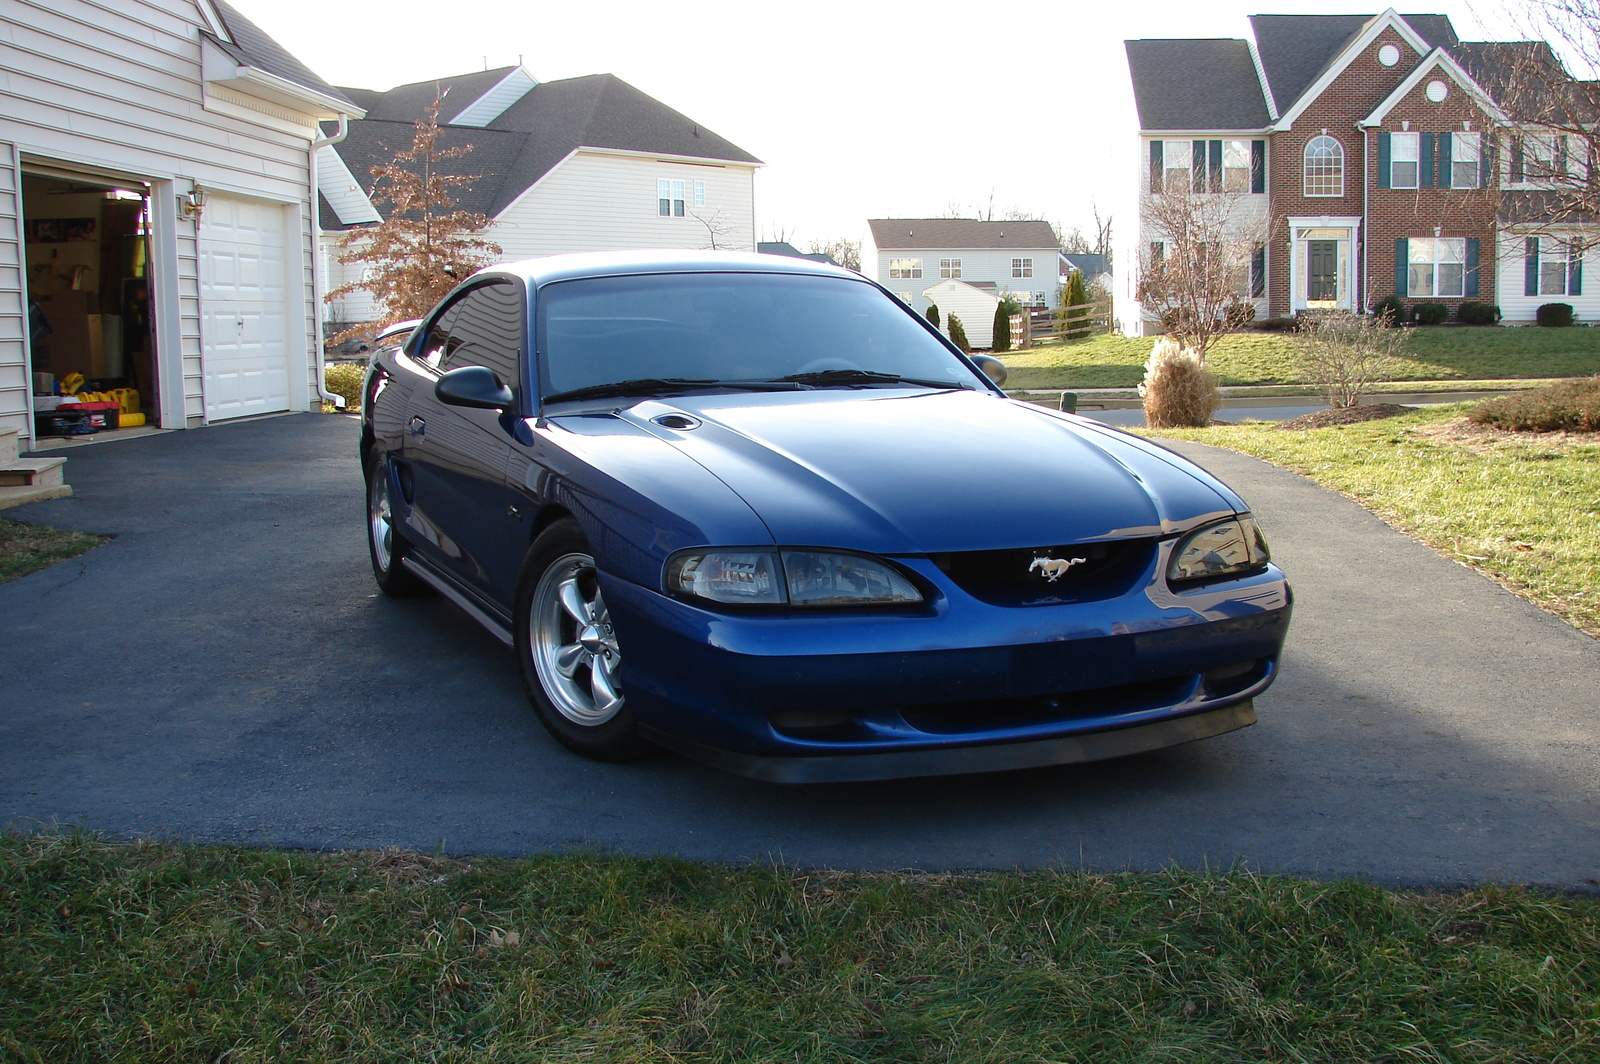 1996 Ford Mustang GT Coupe, 1996 Ford Mustang 2 Dr GT Coupe picture